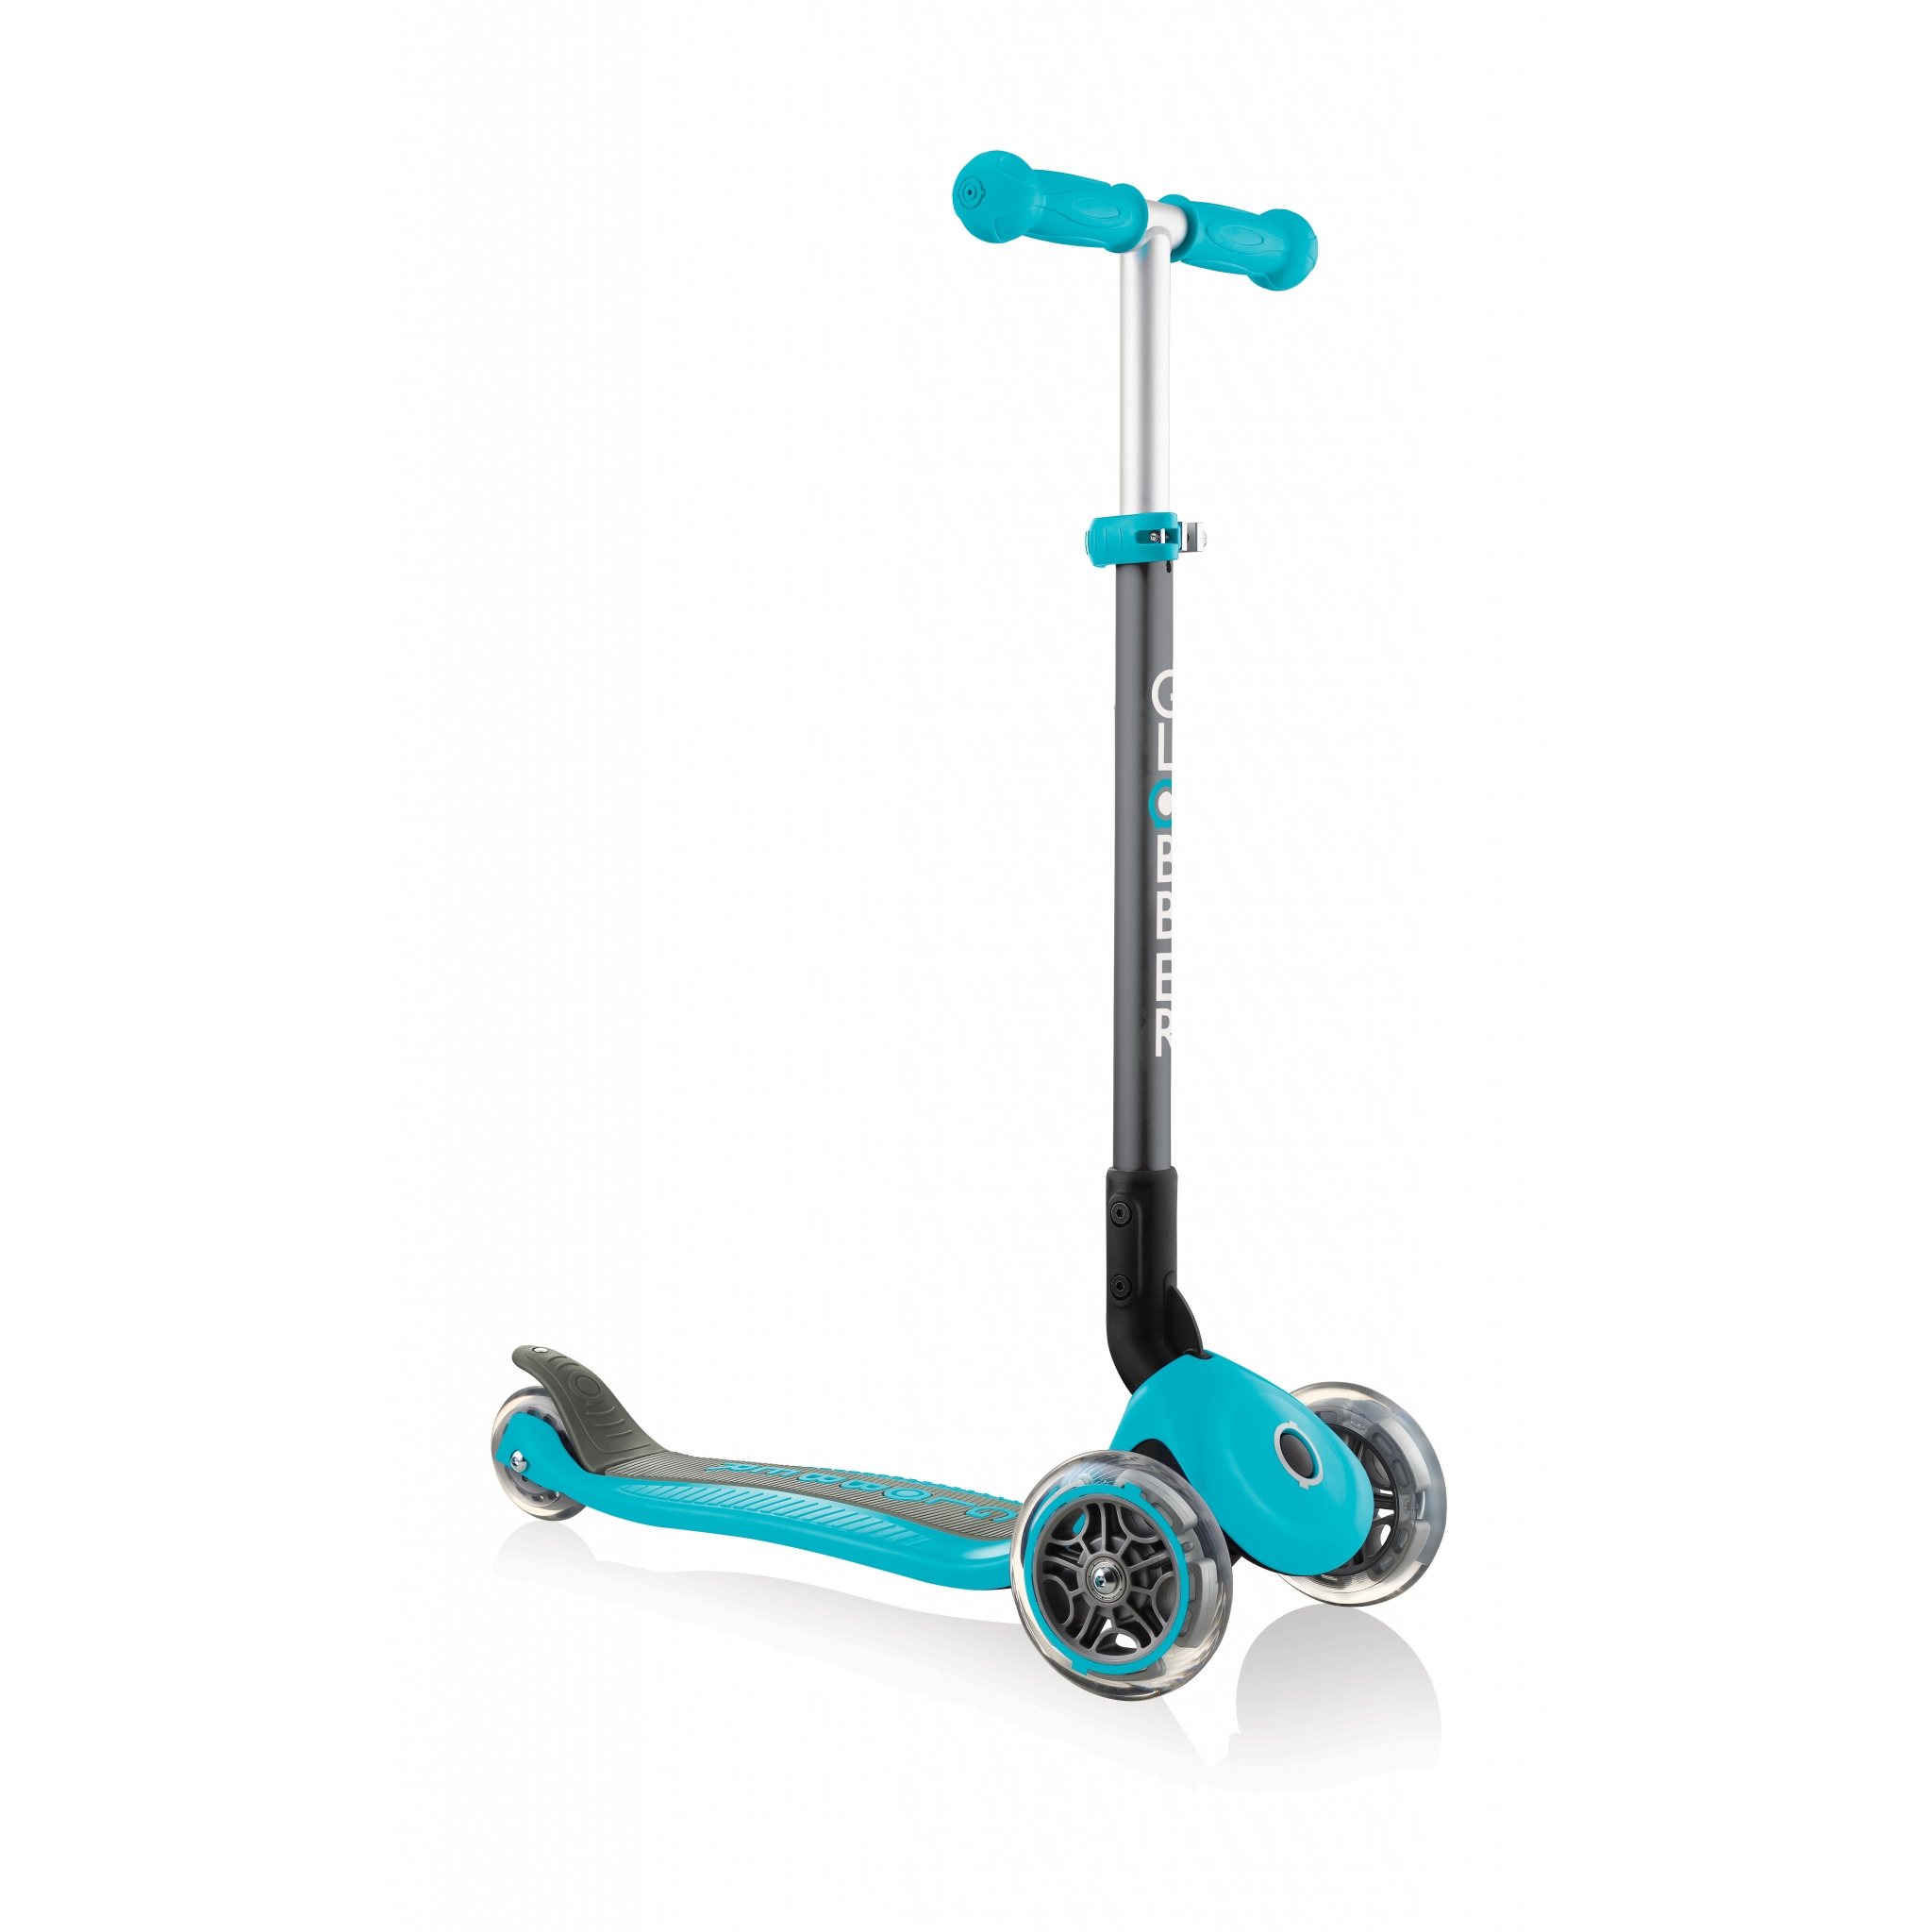 PRIMO-FOLDABLE-3-wheel-foldable-scooter-for-kids_teal